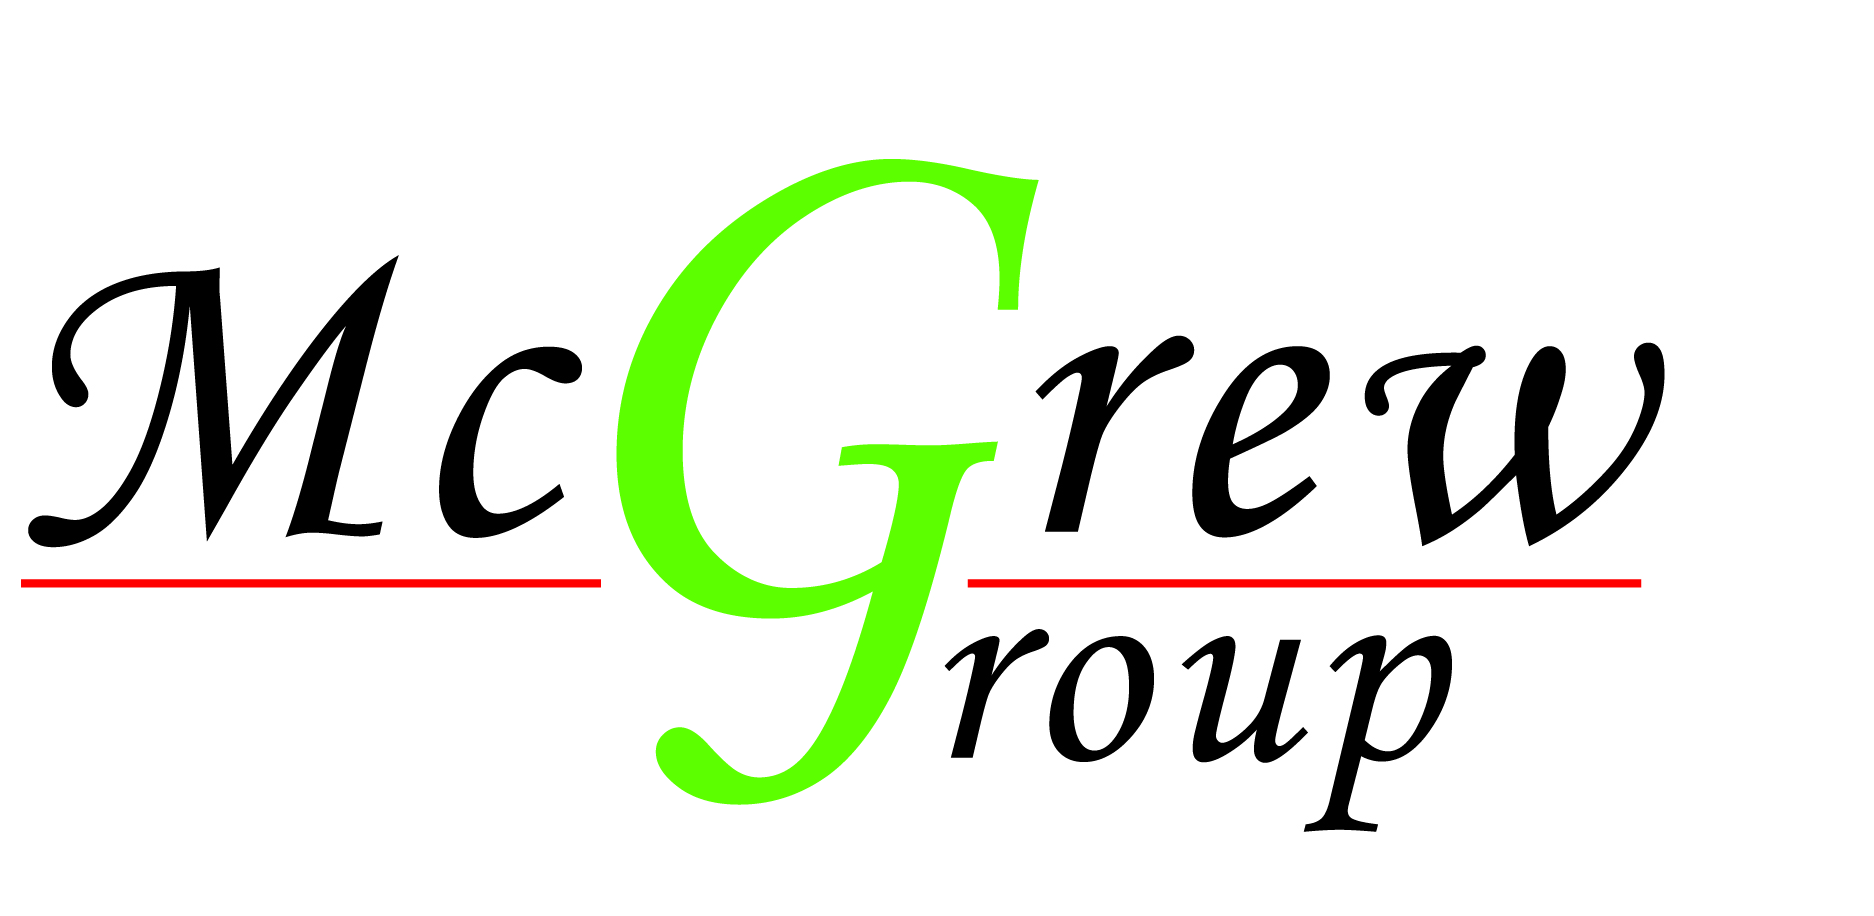 McGrewGroup, LLC